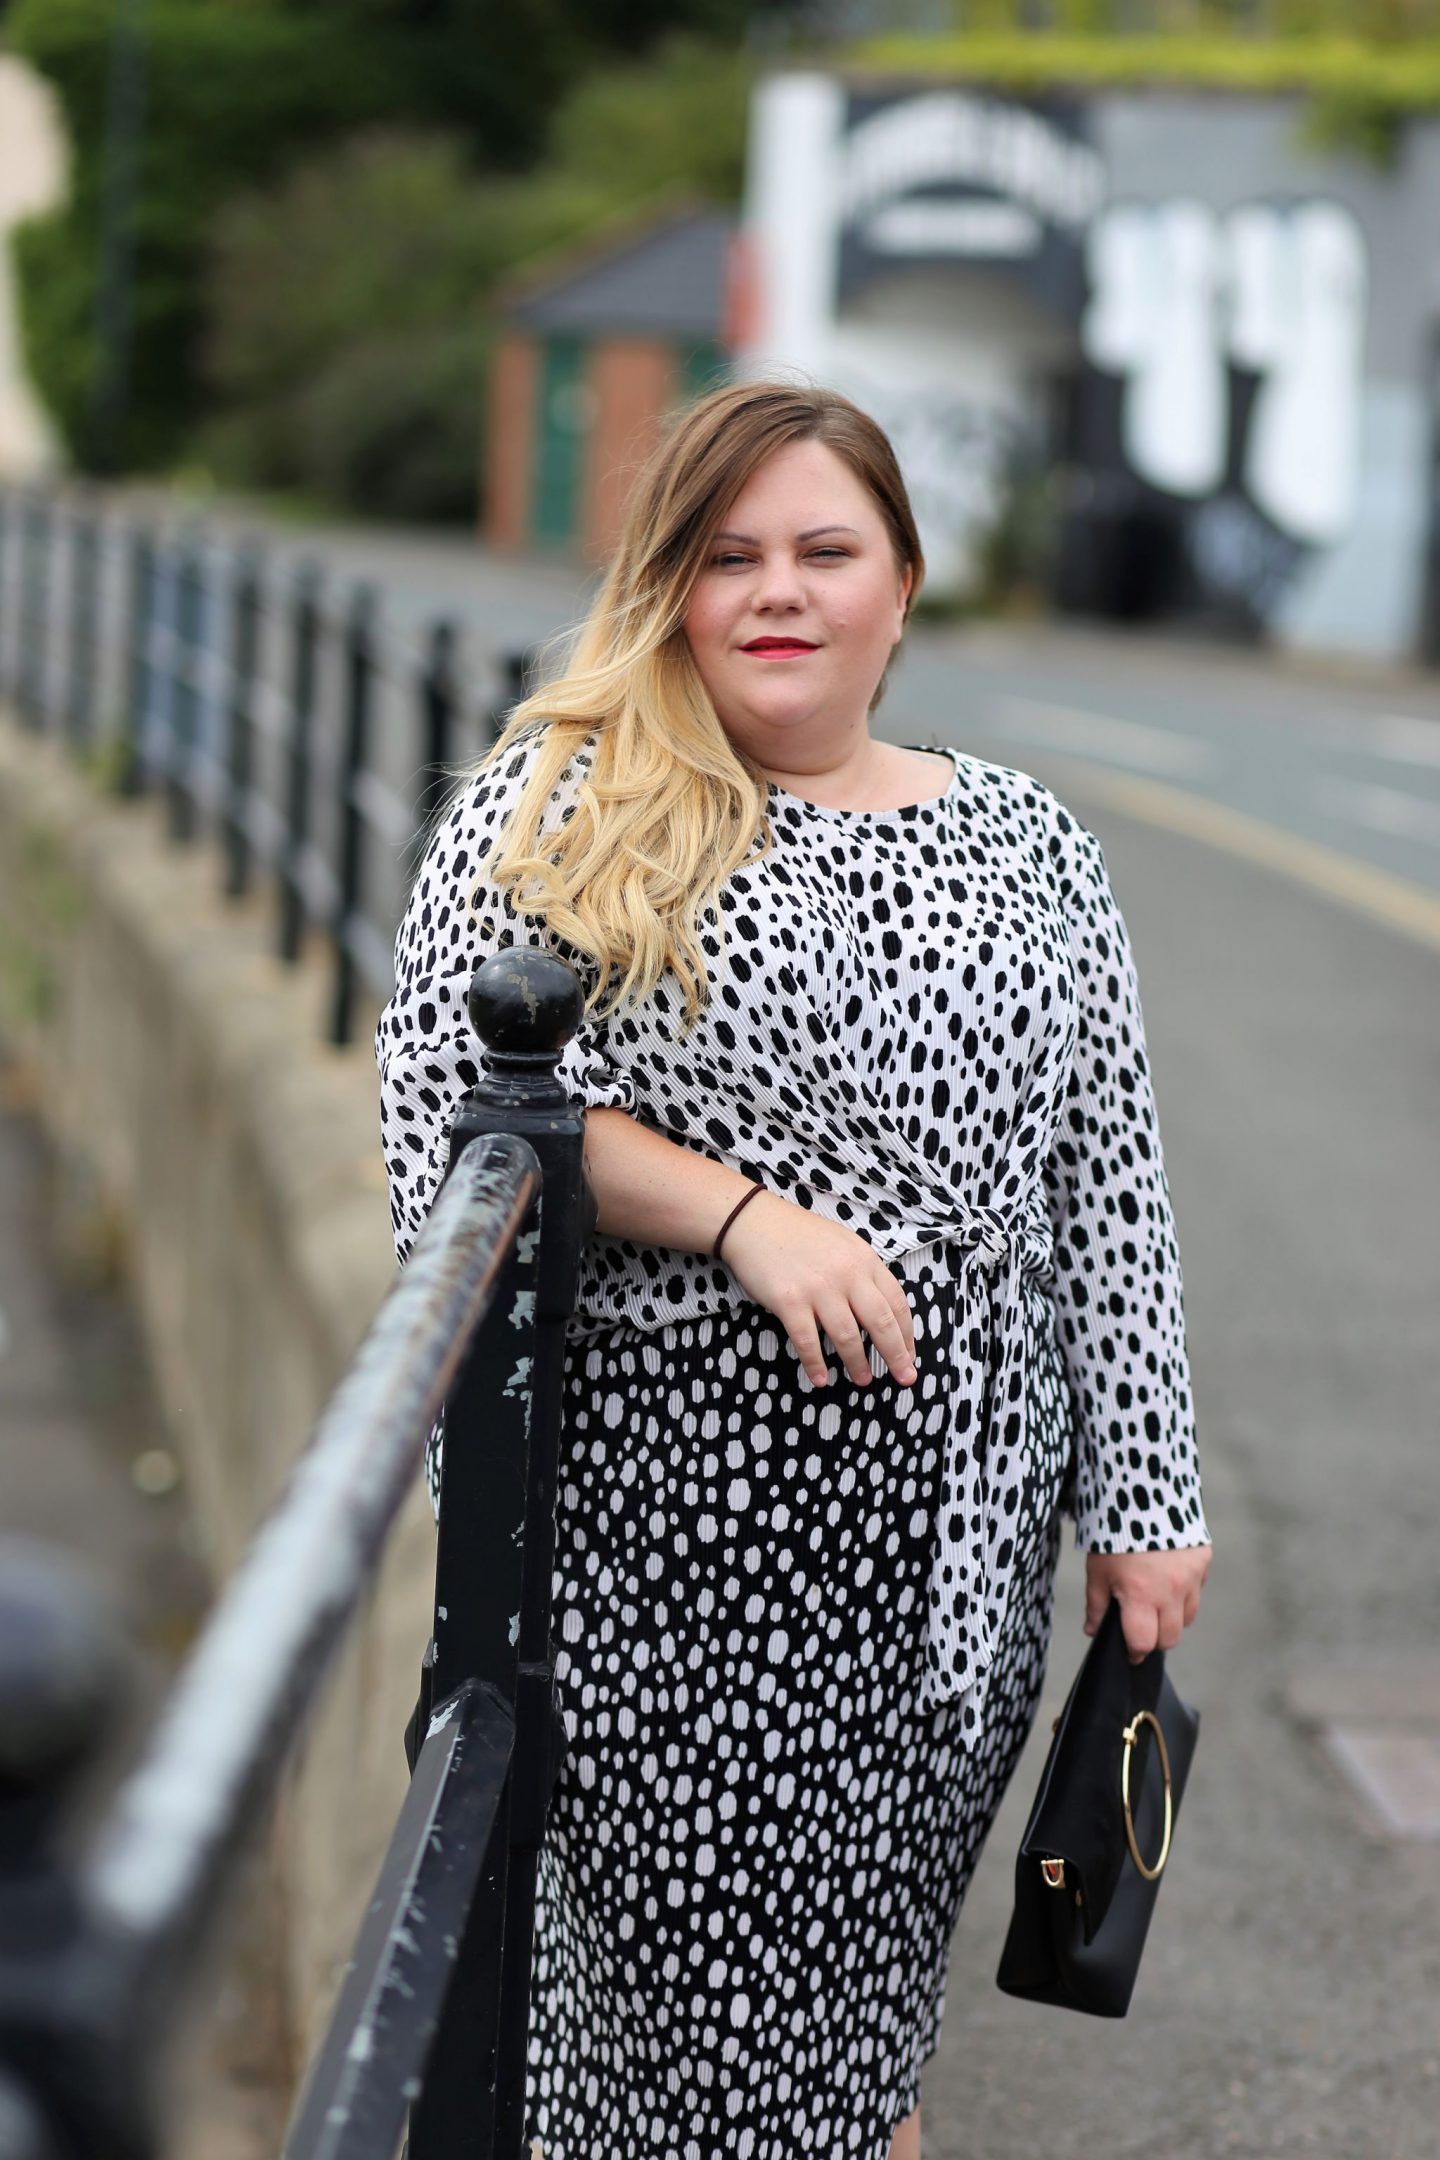 Polka dot for plus size